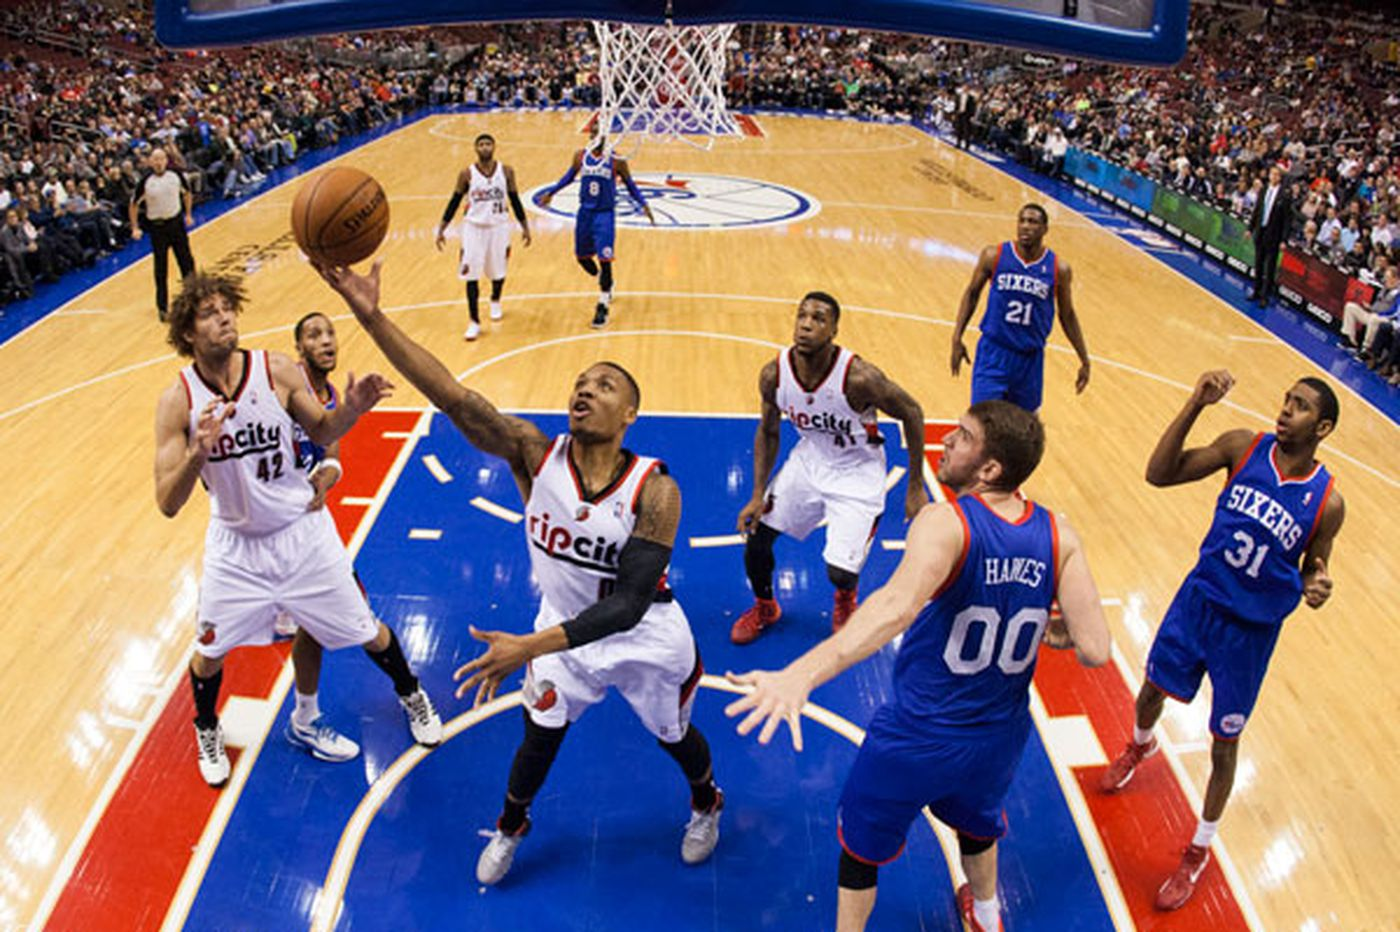 Defensive lapses costing Sixers